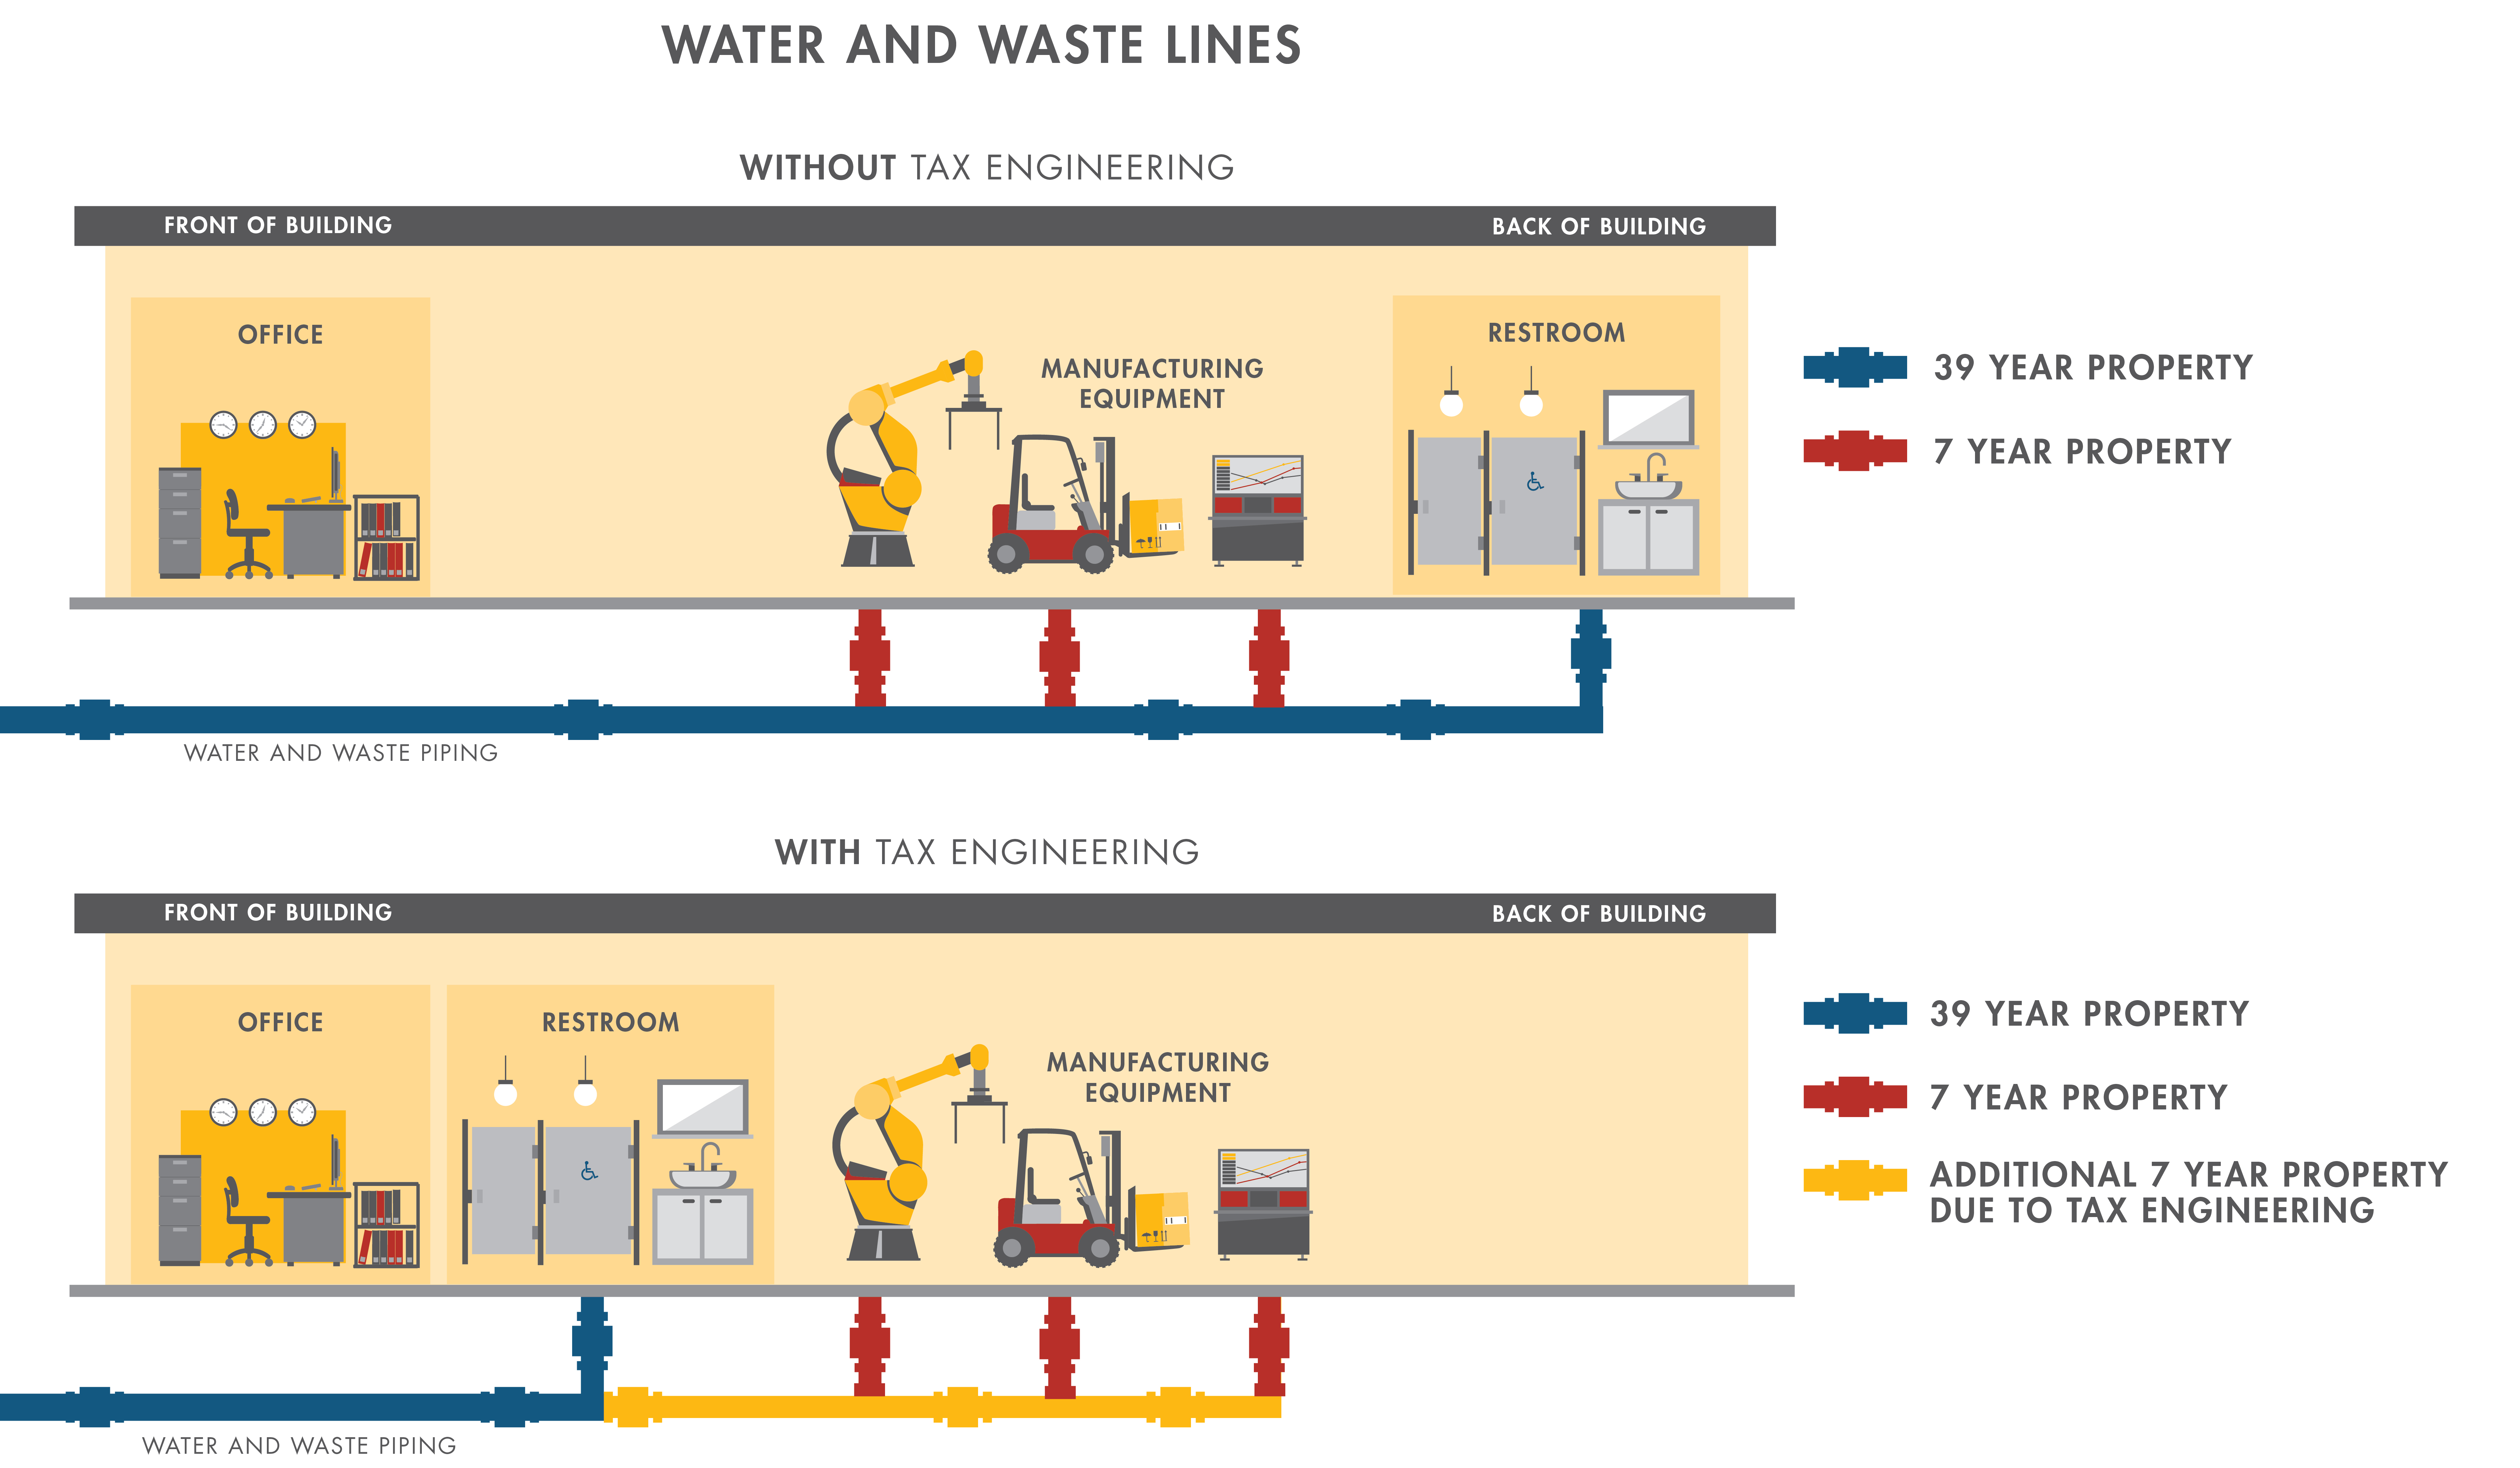 Water and Waste Lines